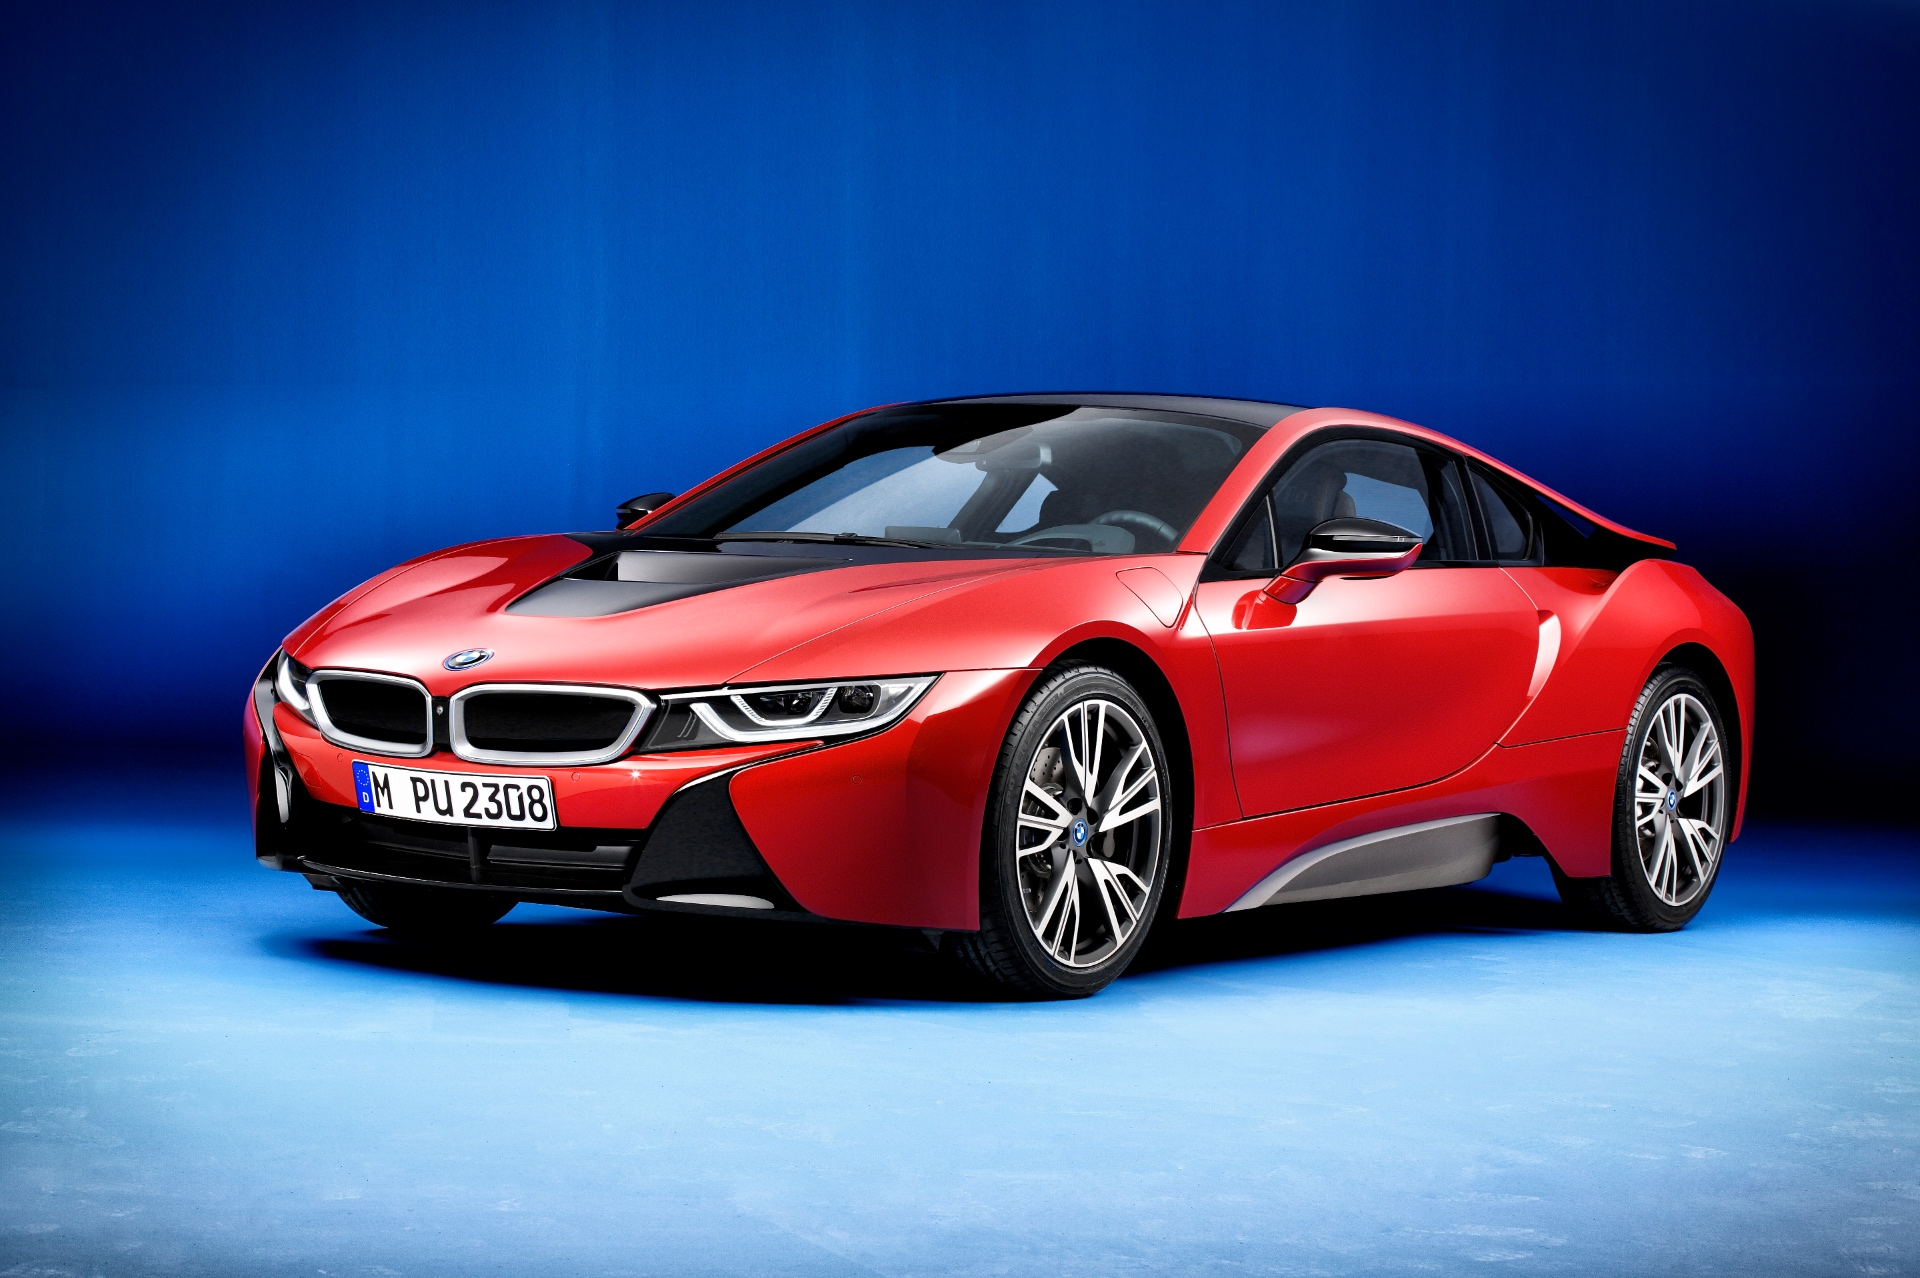 Bmw I8 Protonic Red Special Edition Unveiled Looks Just Right